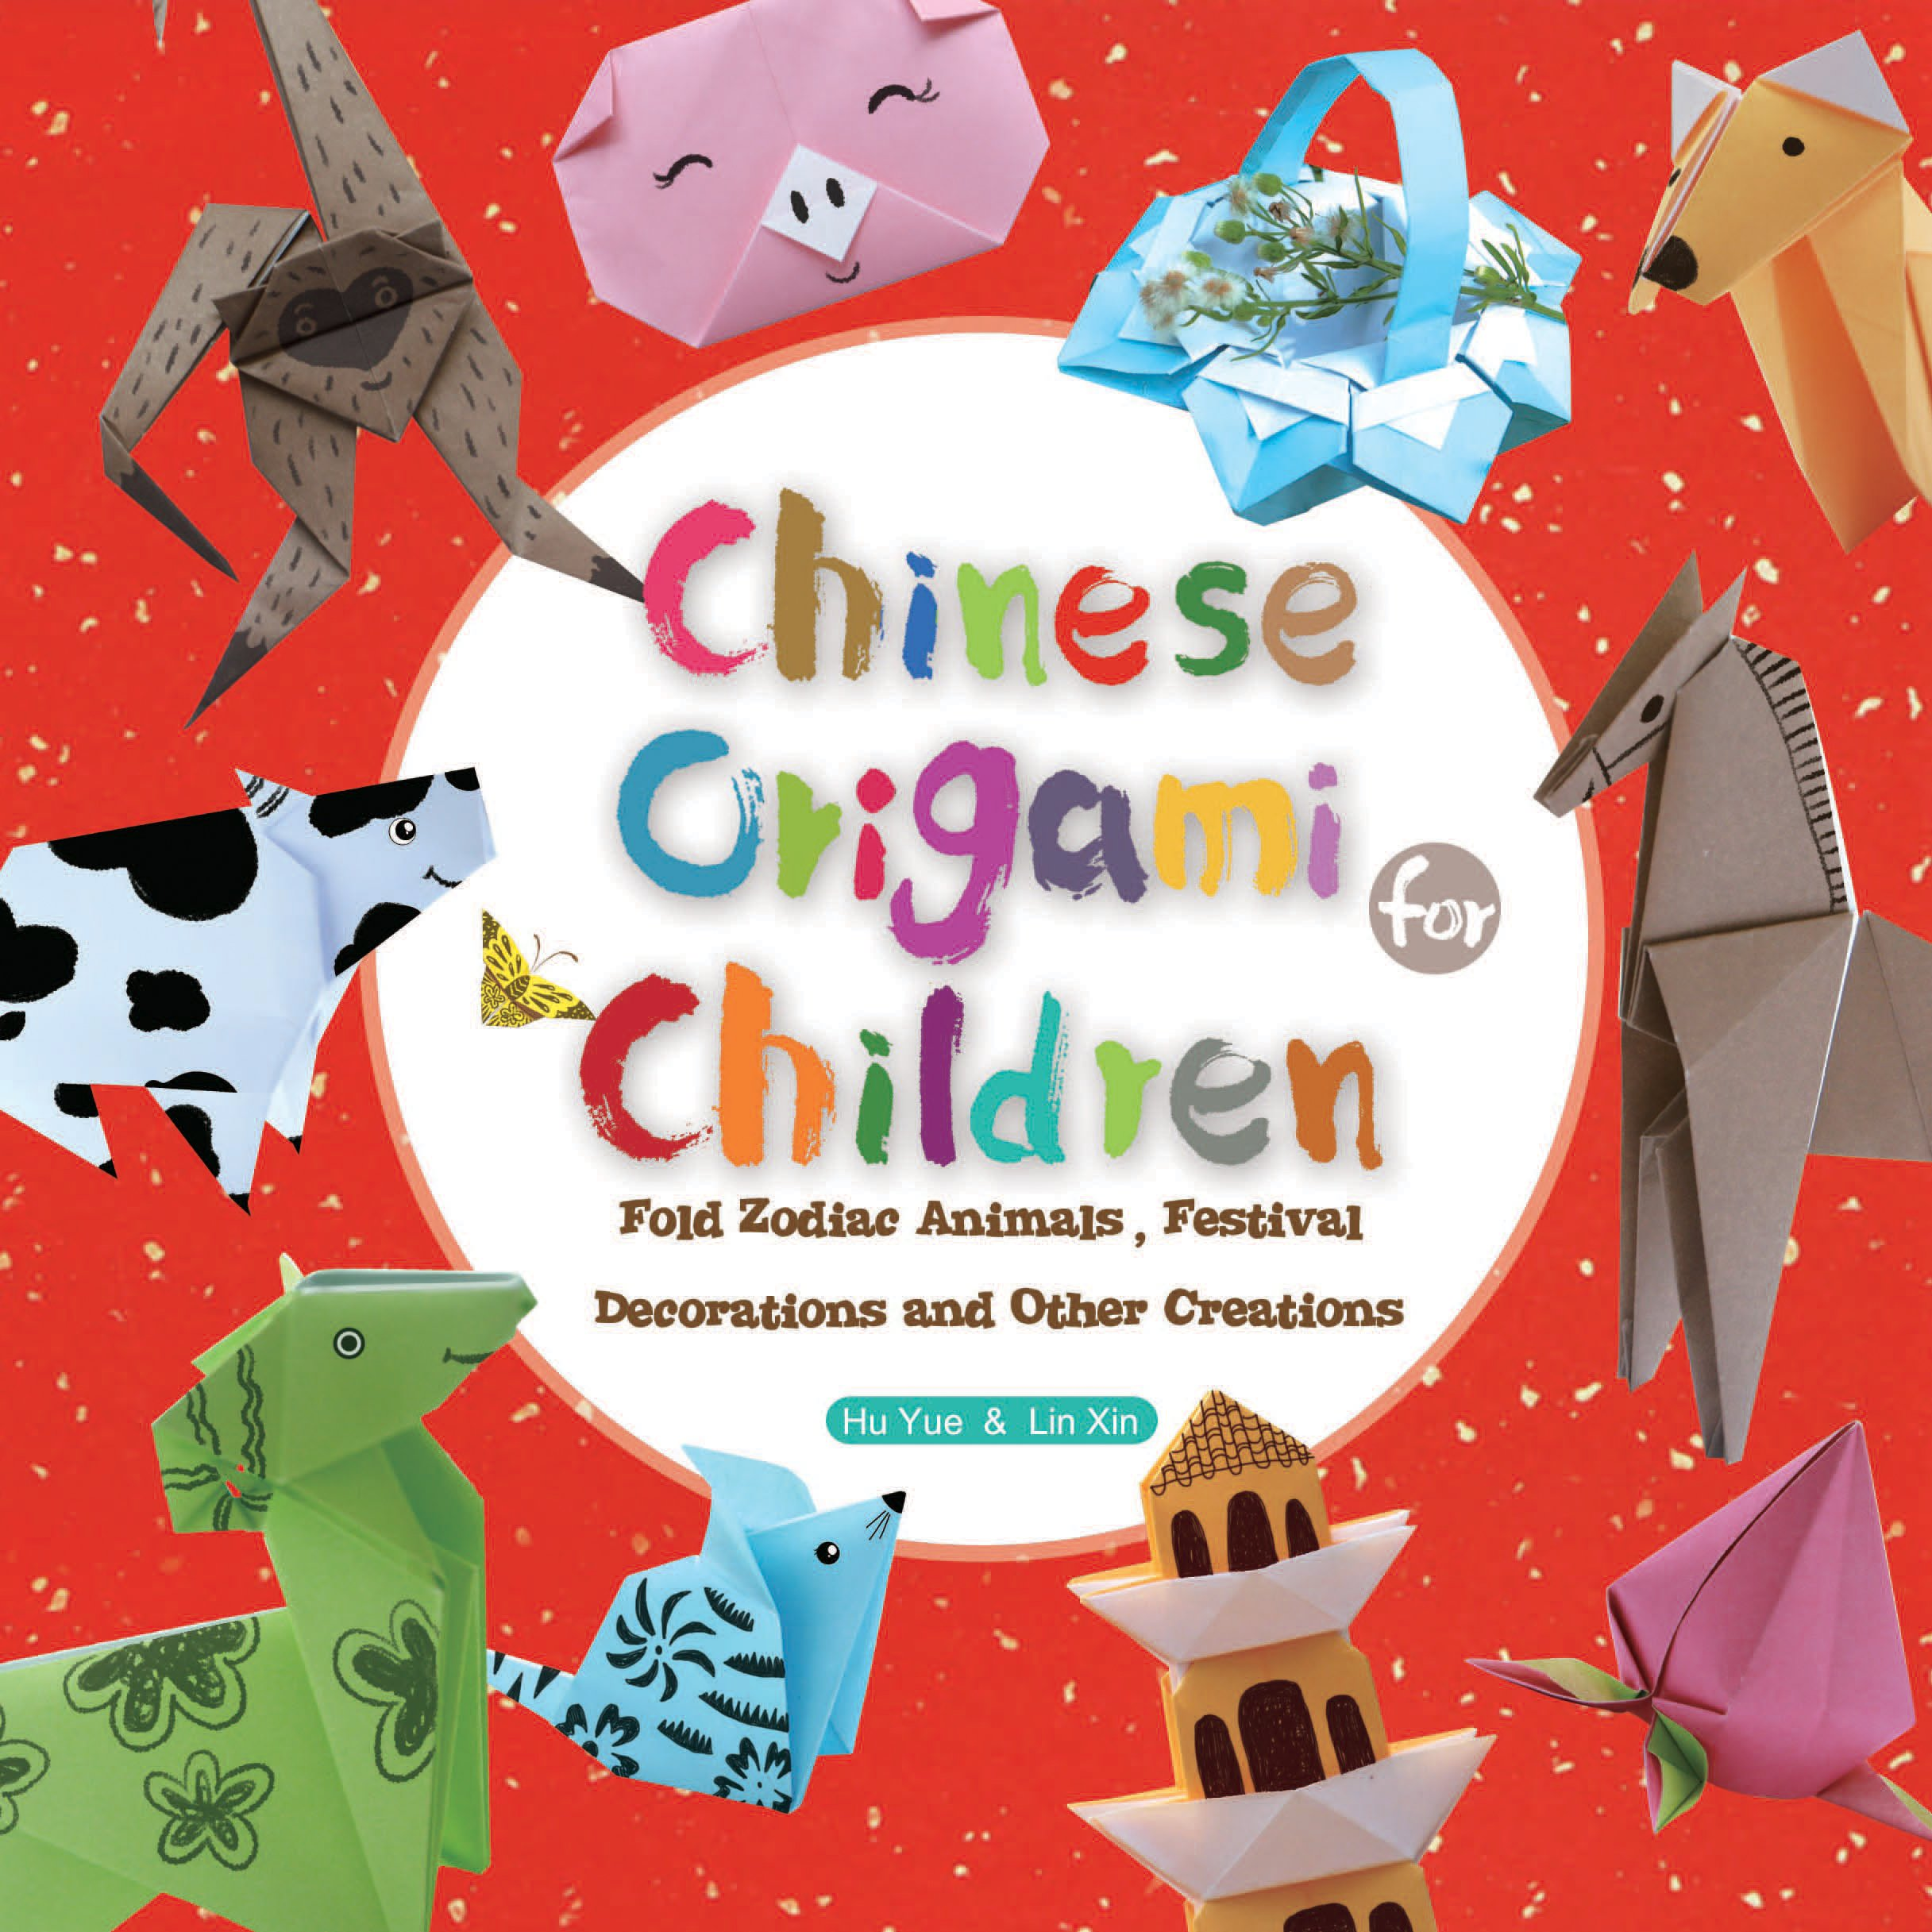 Read Online Chinese Origami for Children: Fold Zodiac Animals, Festival Decorations and Other Creations: This Easy Origami Book is Fun for Both Kids and Parents pdf